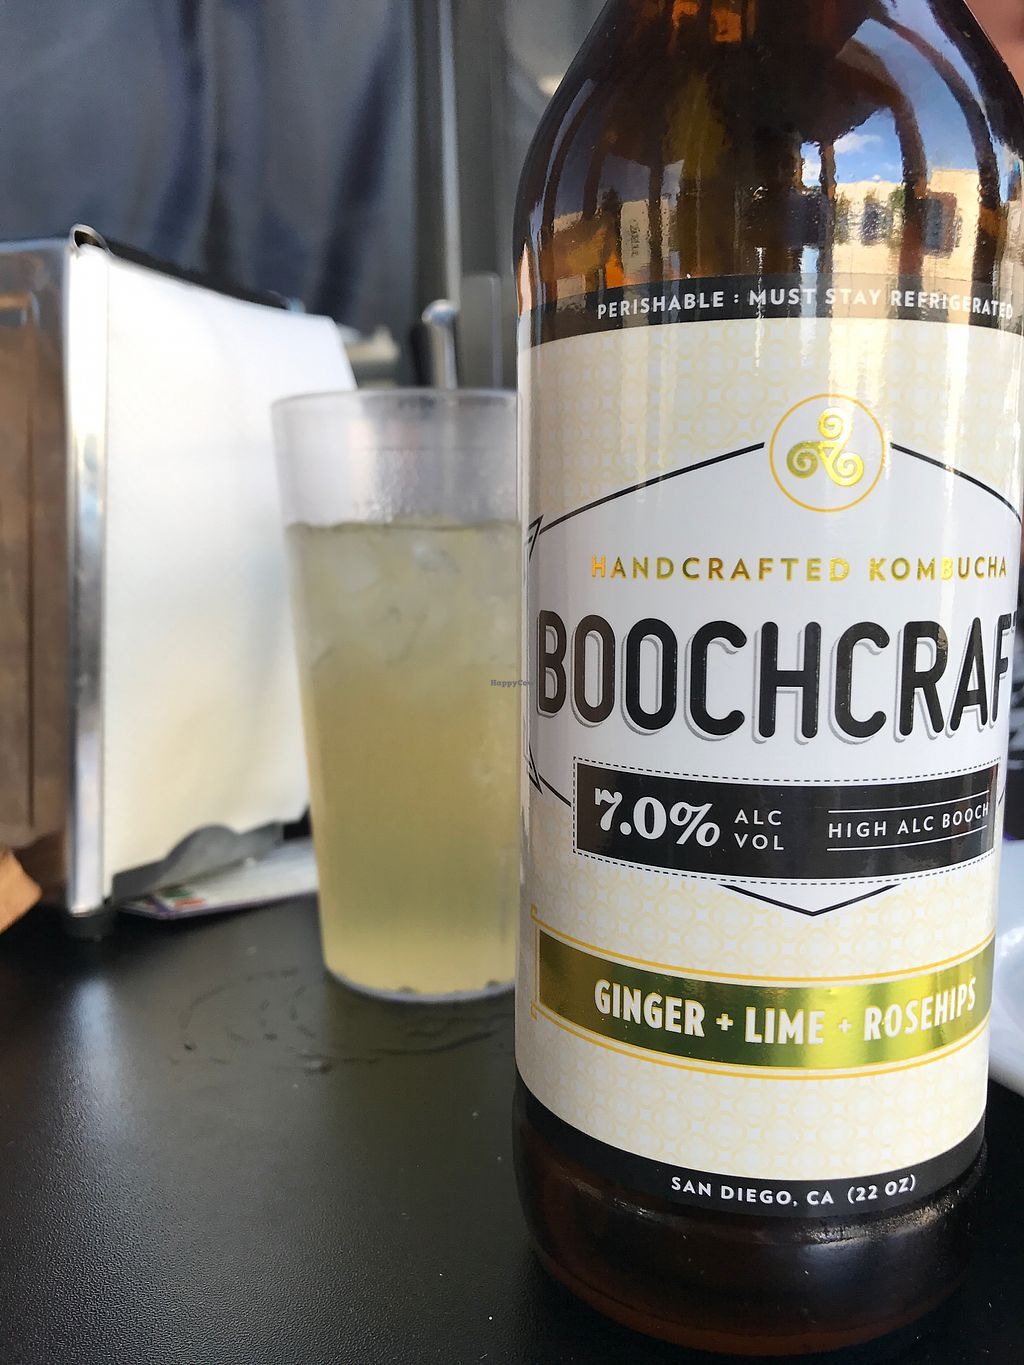 """Photo of Doomie's Home Cookin'  by <a href=""""/members/profile/KateAlexisElliott"""">KateAlexisElliott</a> <br/>Alcoholic kombucha - so you can pretend your ok.  <br/> September 21, 2017  - <a href='/contact/abuse/image/24562/306918'>Report</a>"""